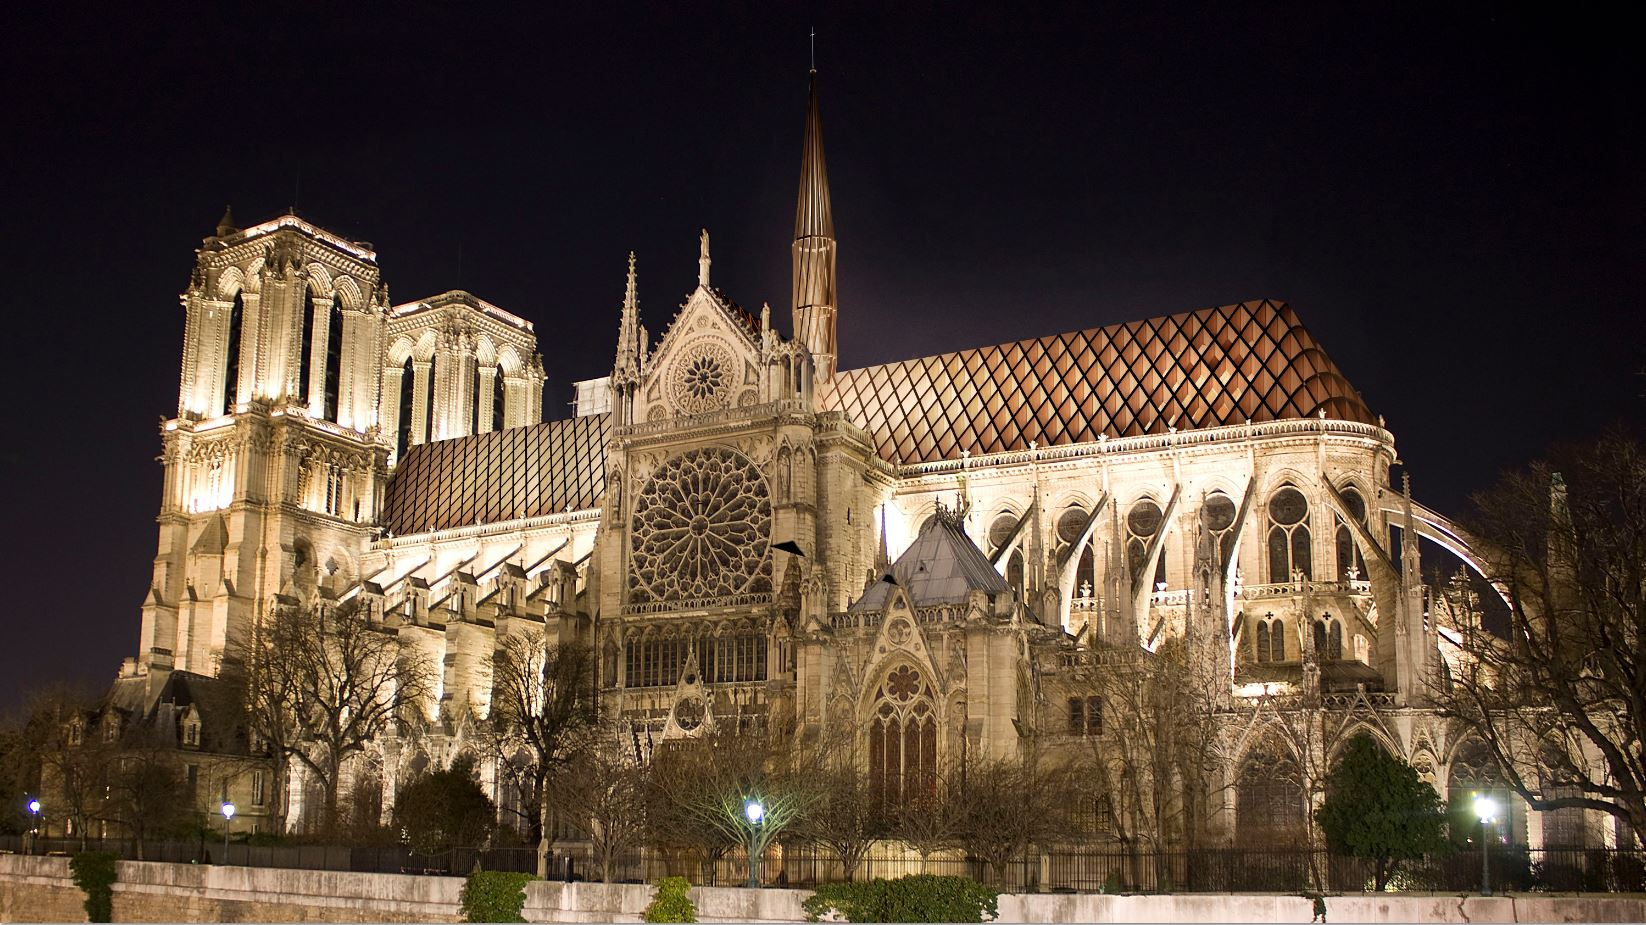 Night View of the Notre Dame with Bicknell